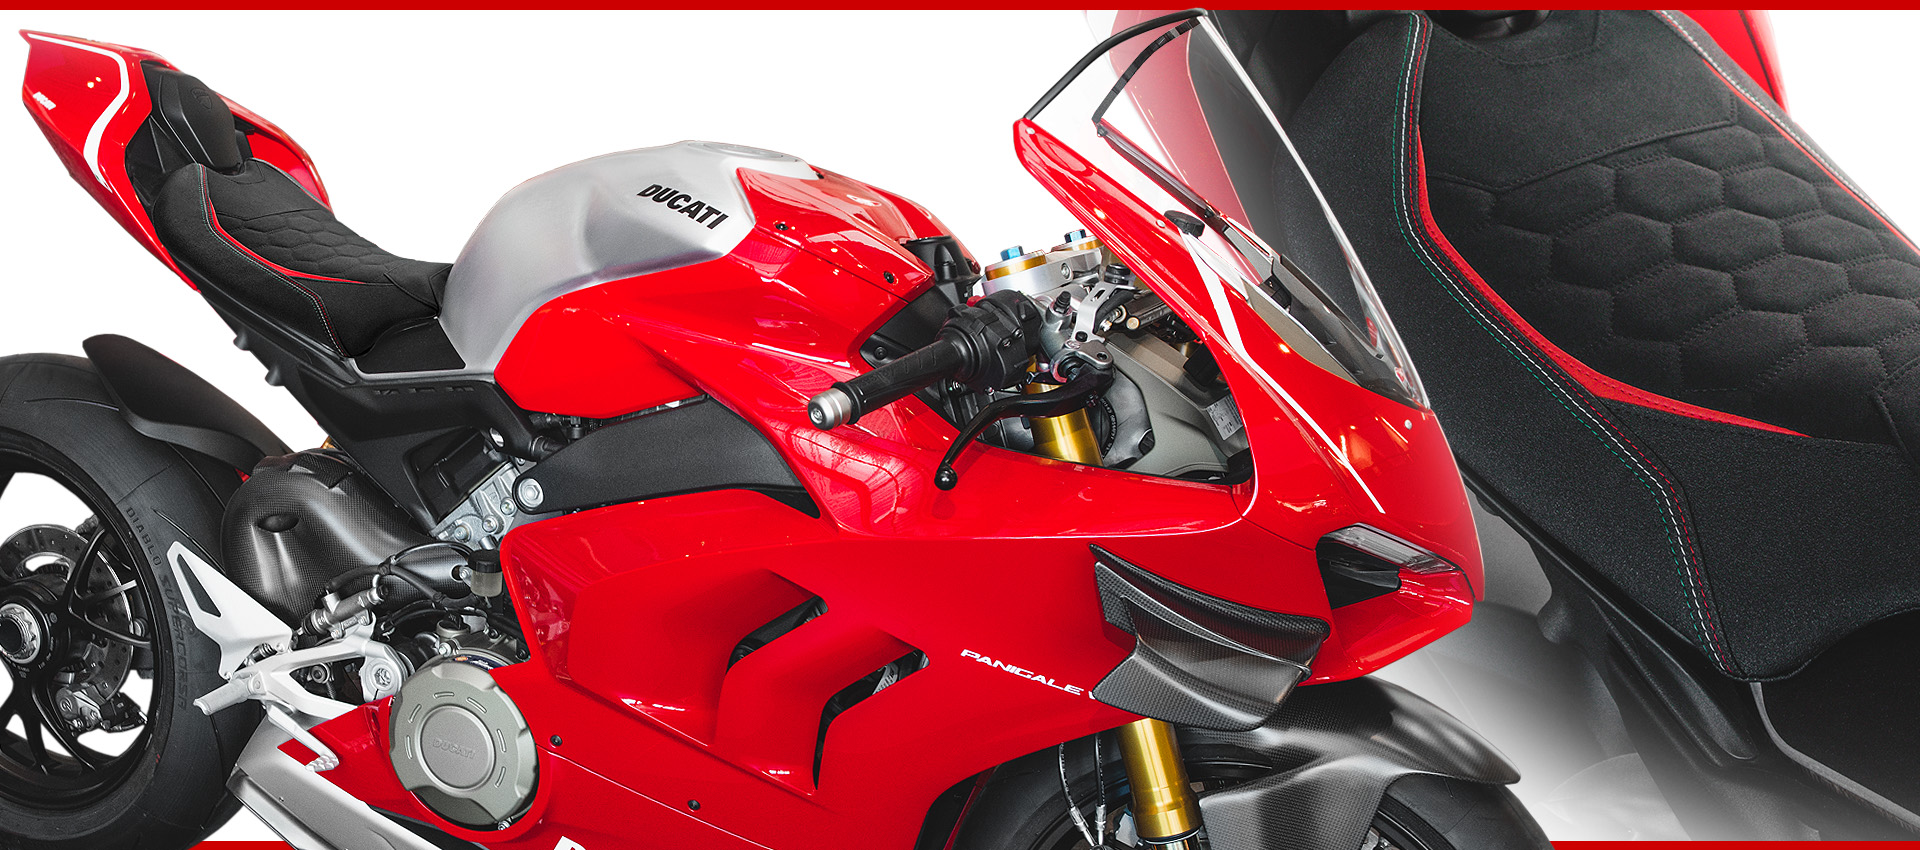 DUCATI PANIGALE V4R HEX-R SEAT COVER